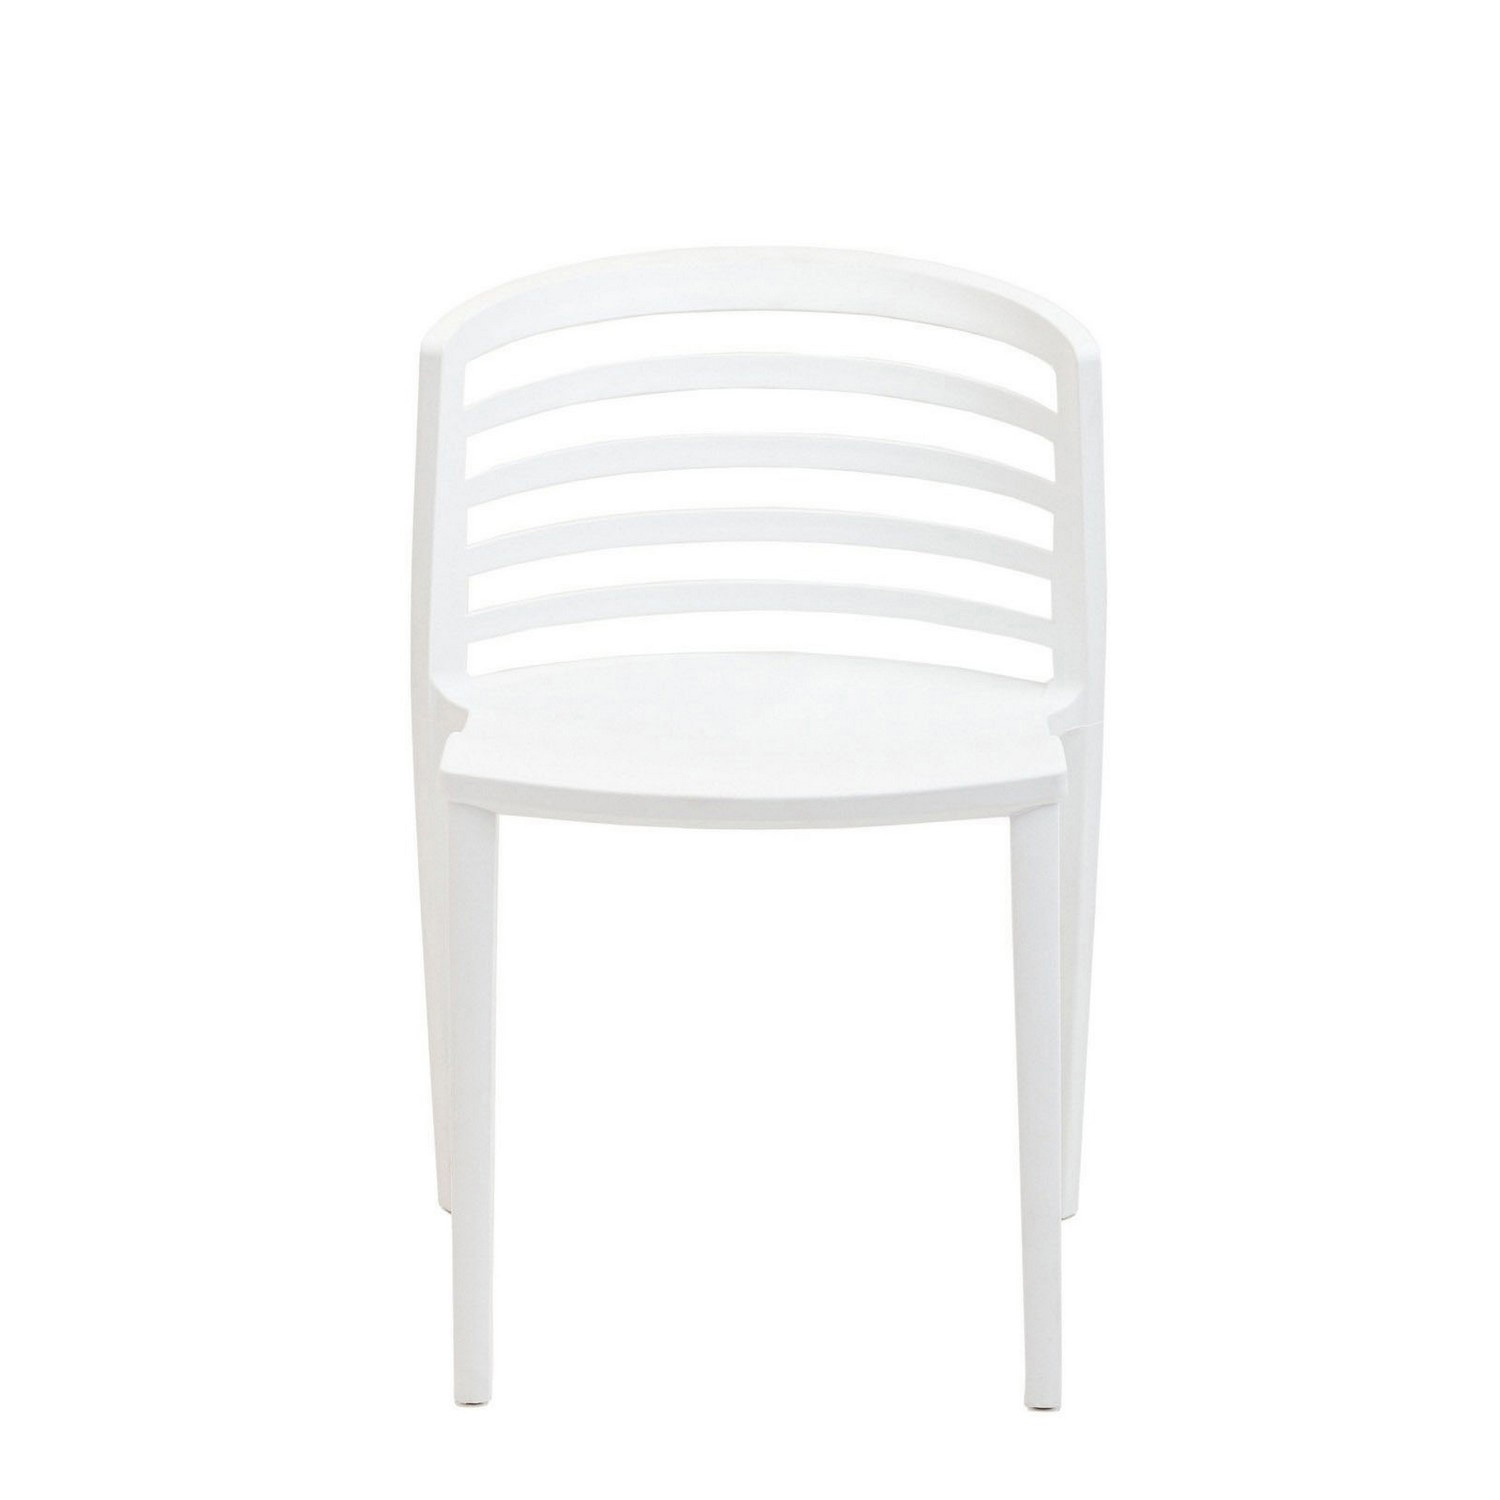 Modway Curvy Dining Side Chair - White